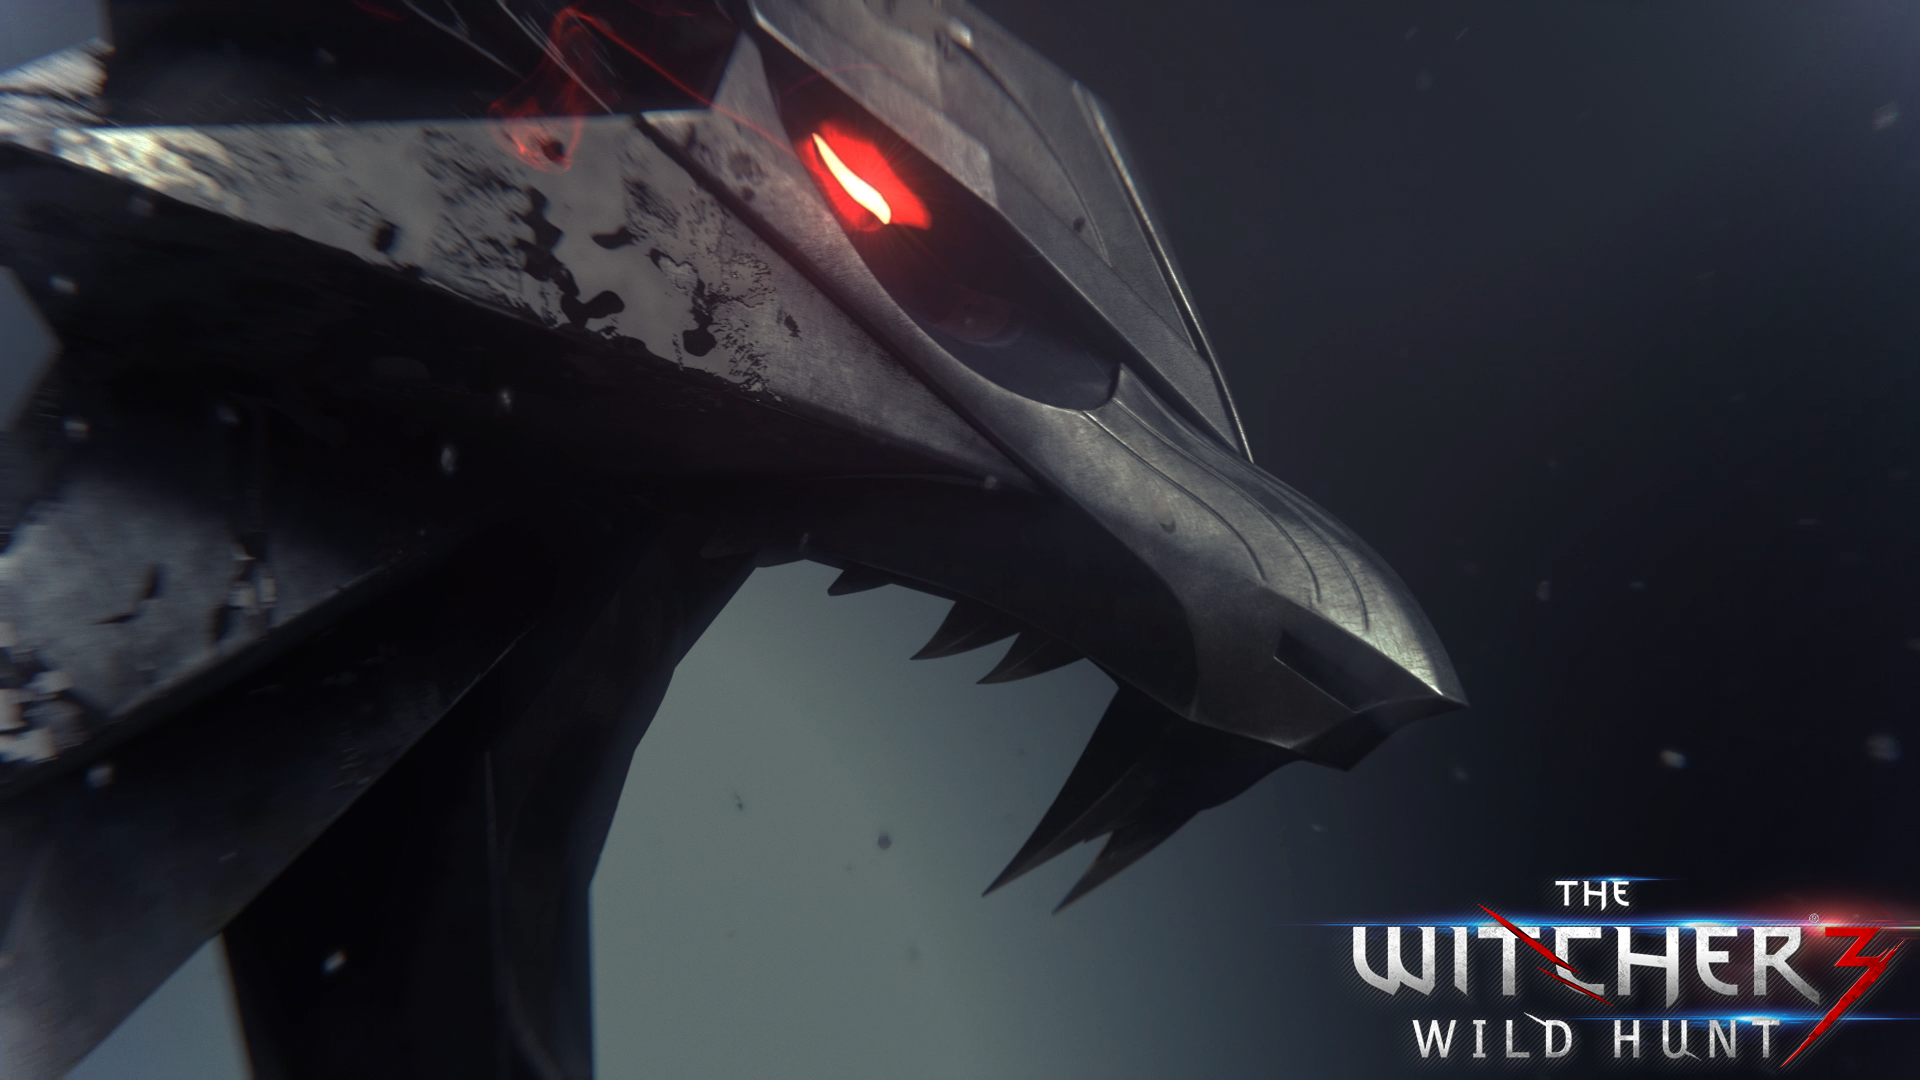 The Witcher 3 Wallpaper 5 By Romix44 On Deviantart